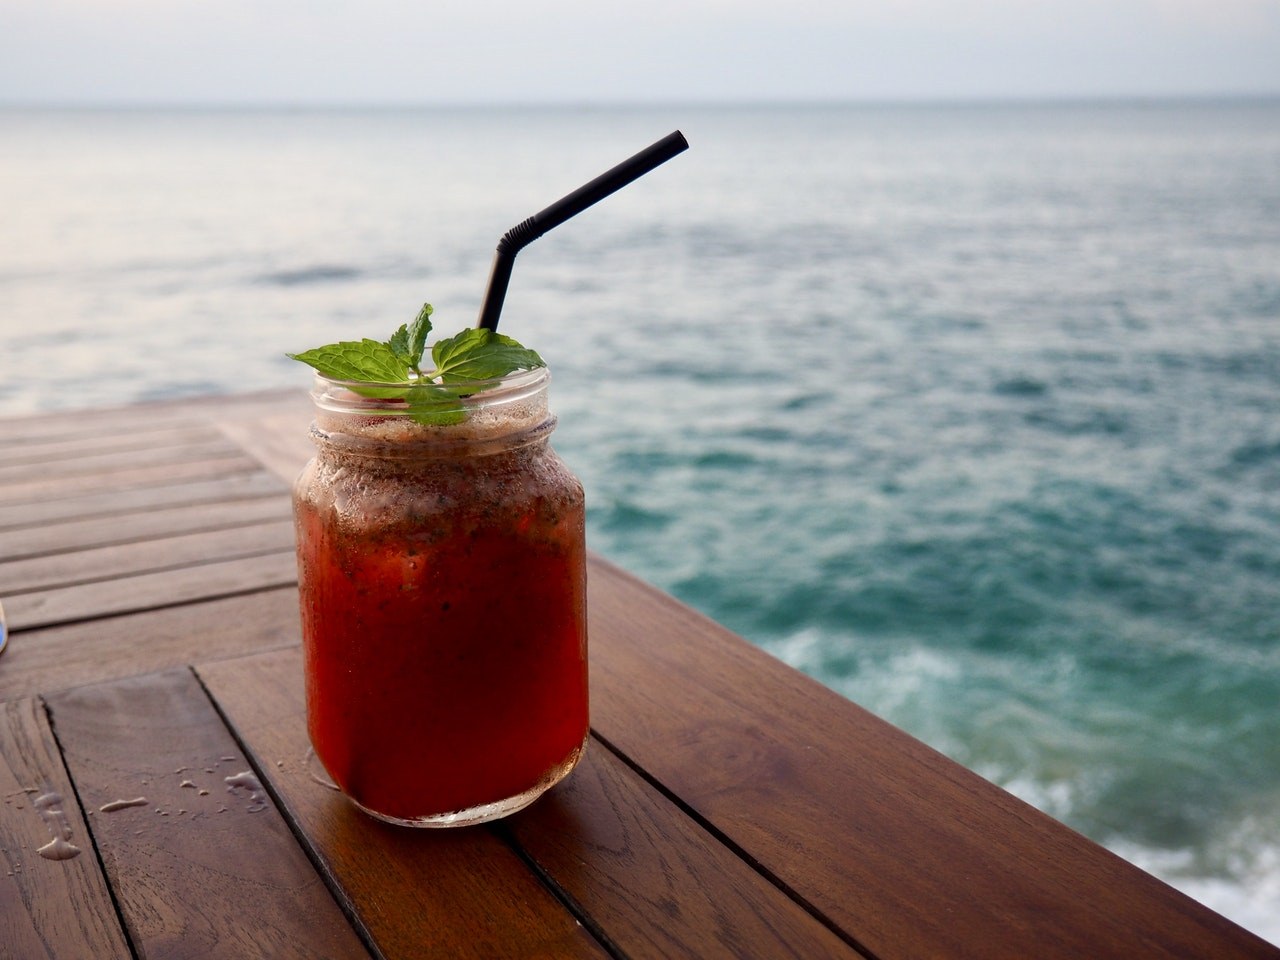 Cocktails for the Rest of the Summer